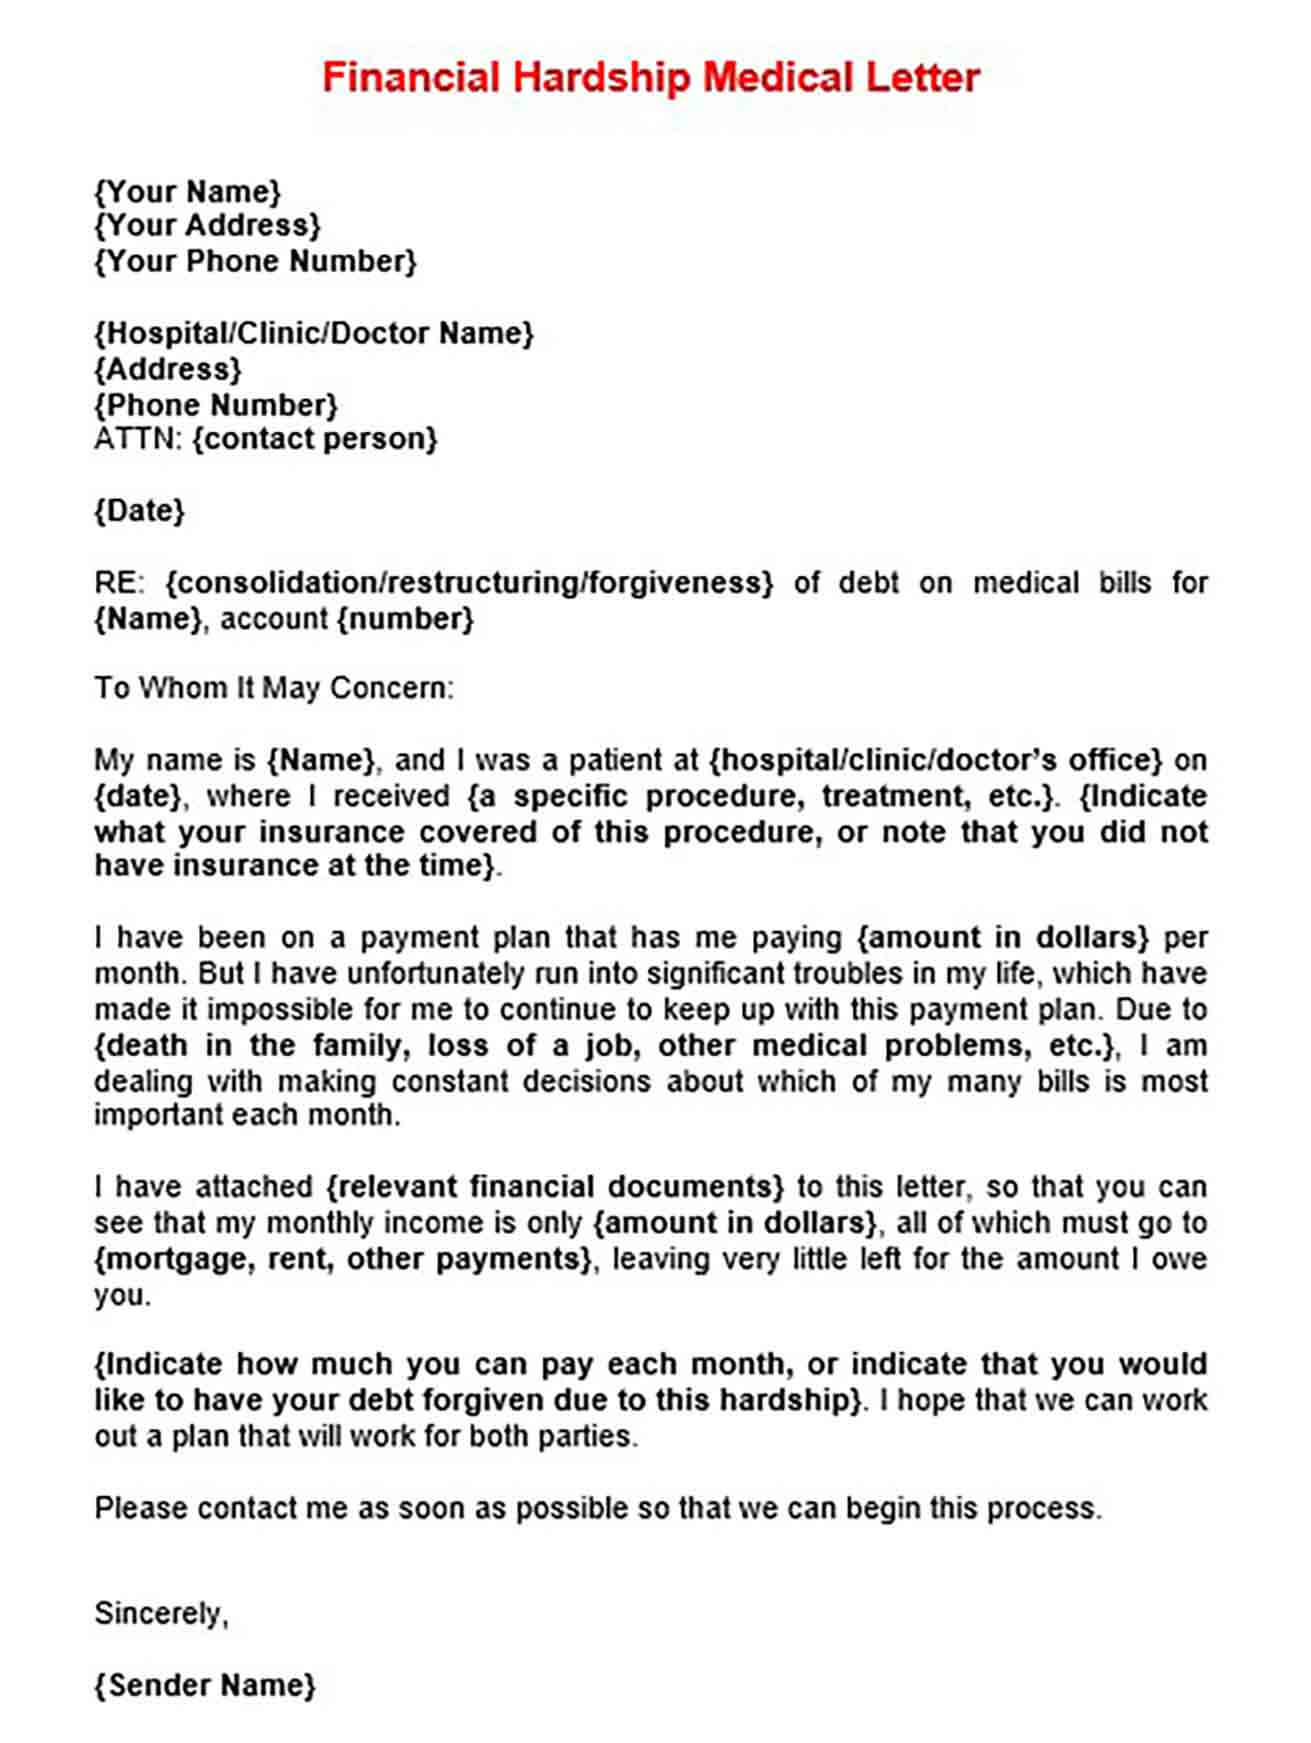 Financial Hardship Medical Letter